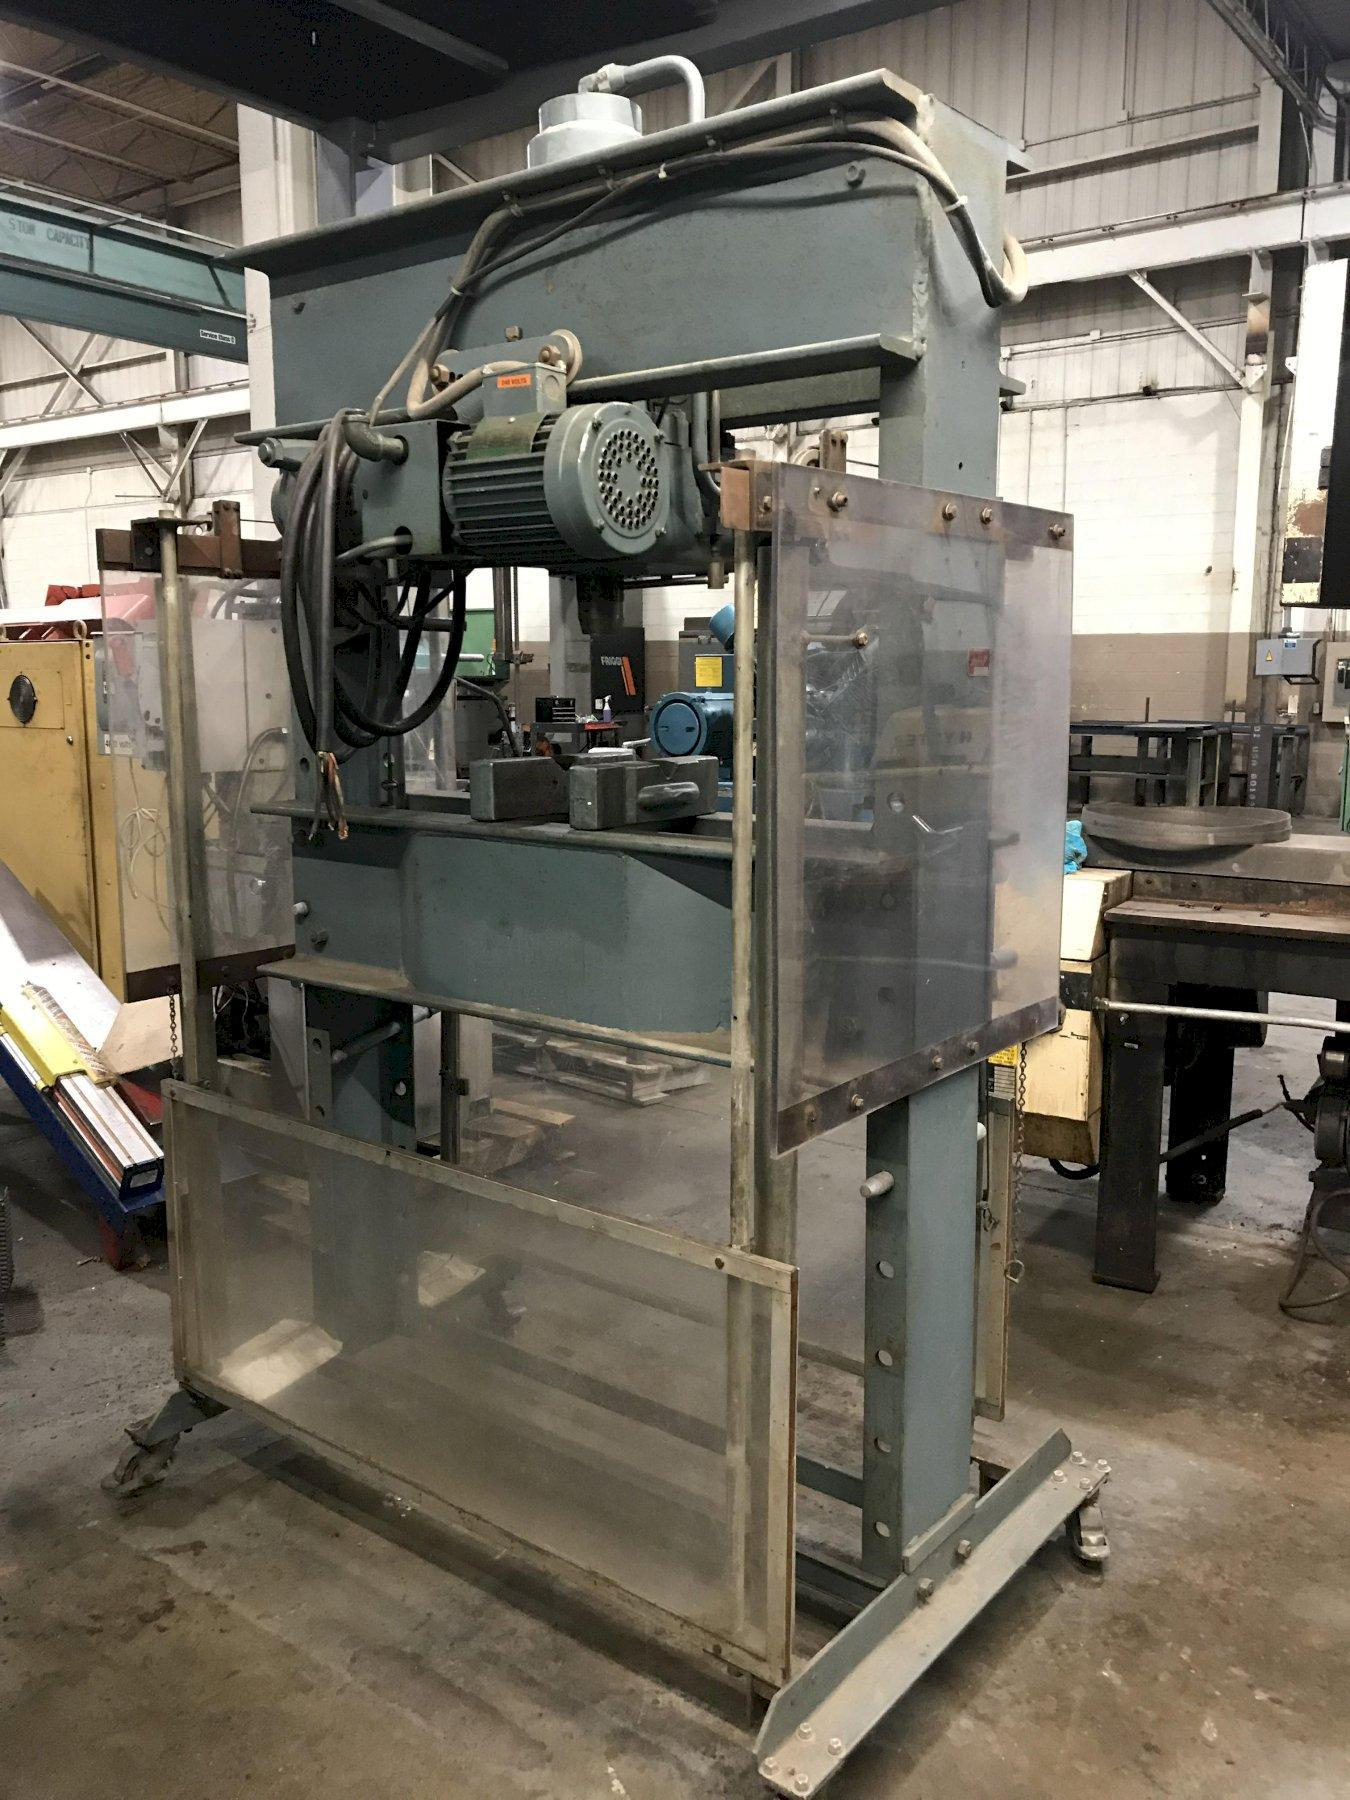 USED DAKE ELEC-DRAULIC H-FRAME PRESS, Model 5-264, 75 ton, Stock No. 10383